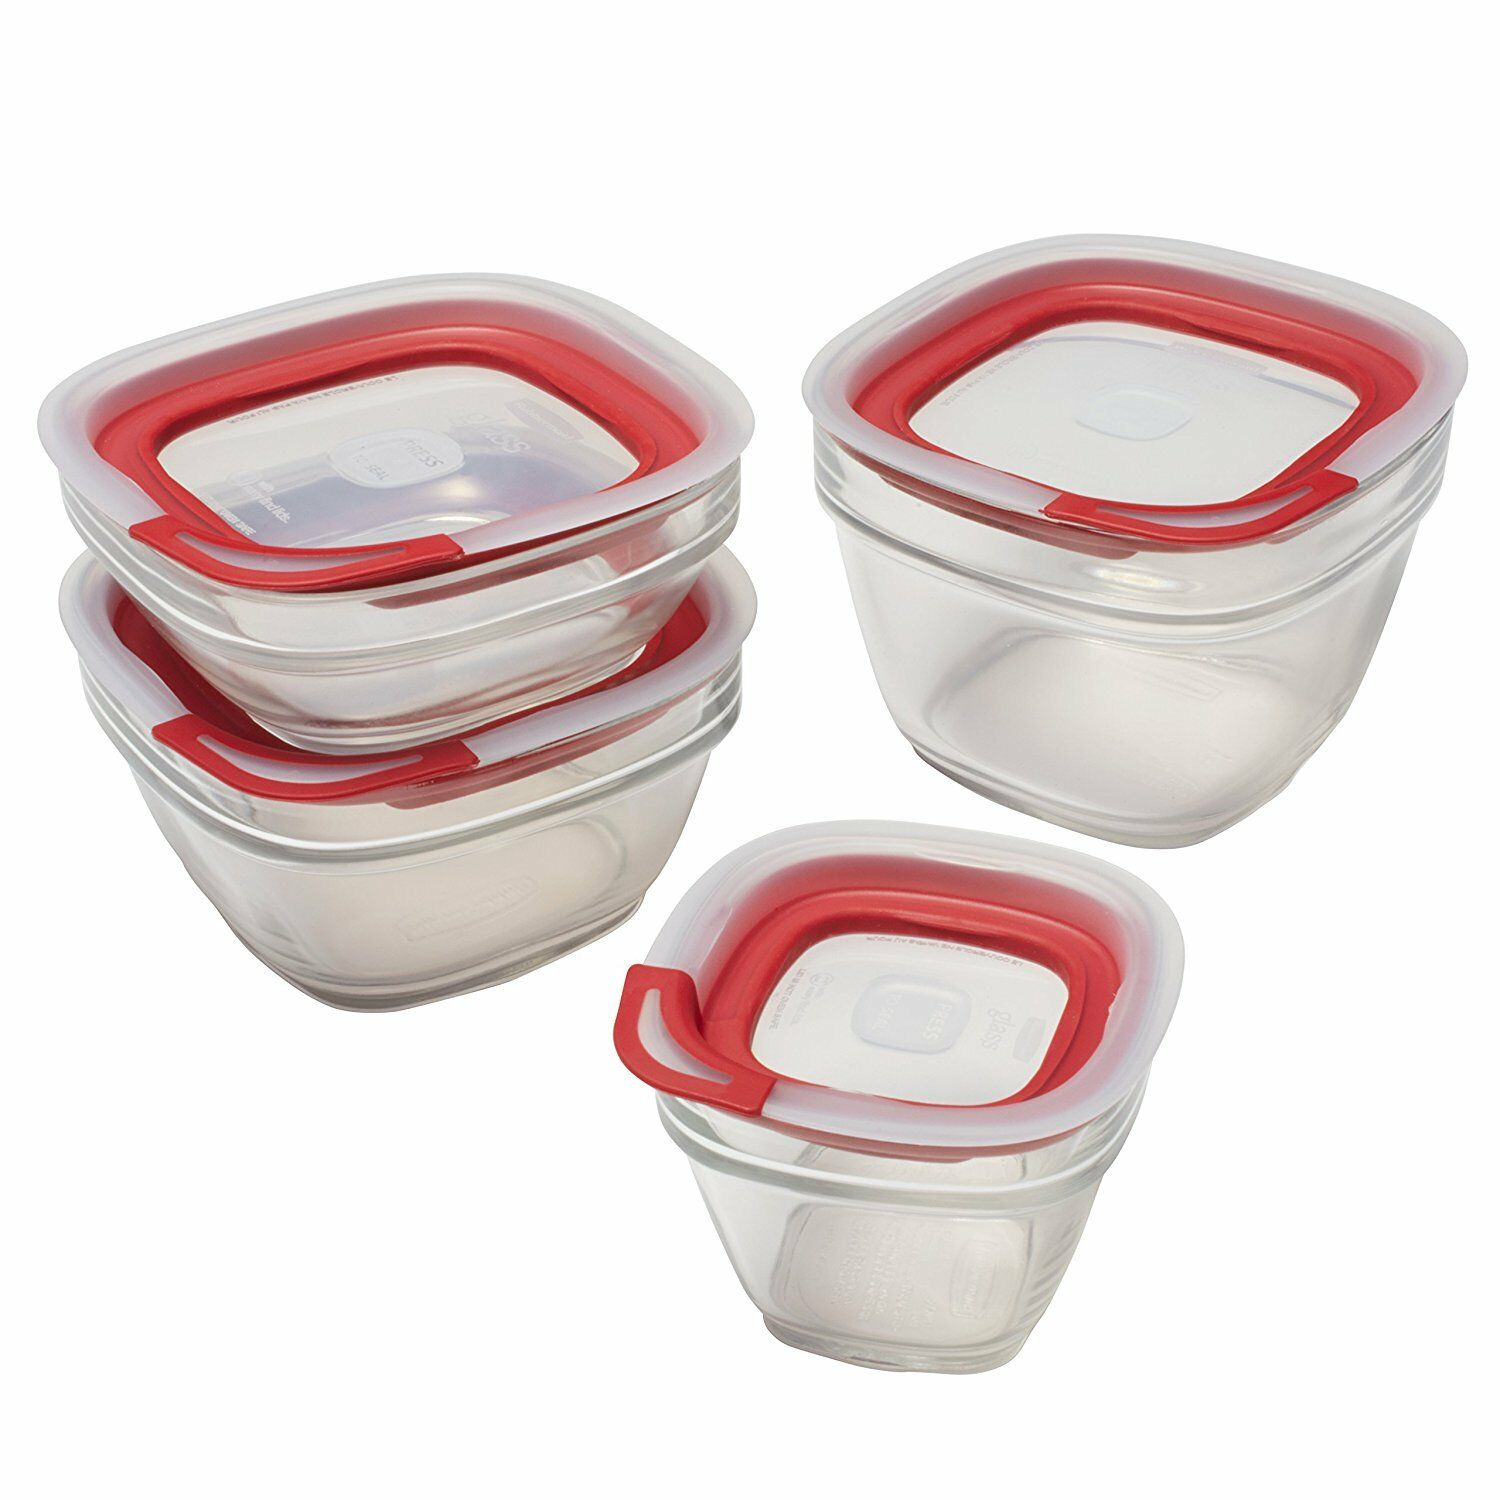 Rubbermaid Easy Find Lids Glass Food Storage Containers 10 Sets eBay